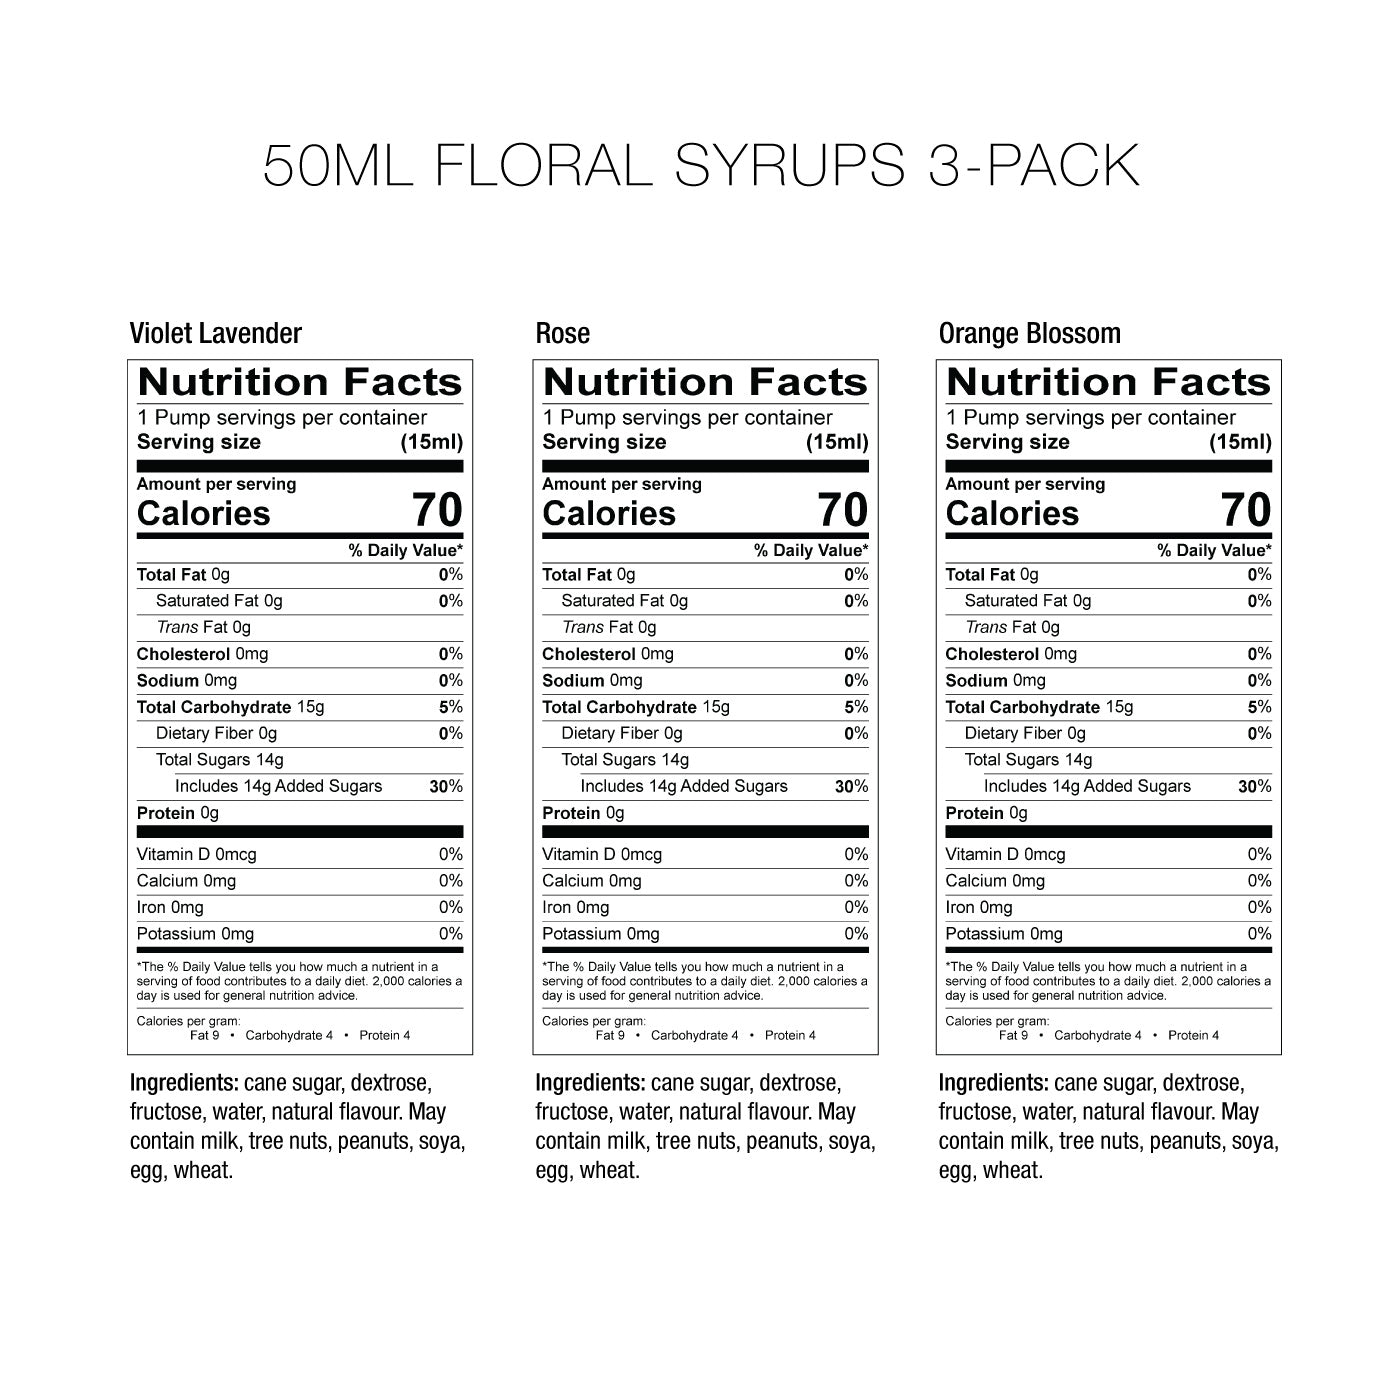 Floral Syrups 3 Pack